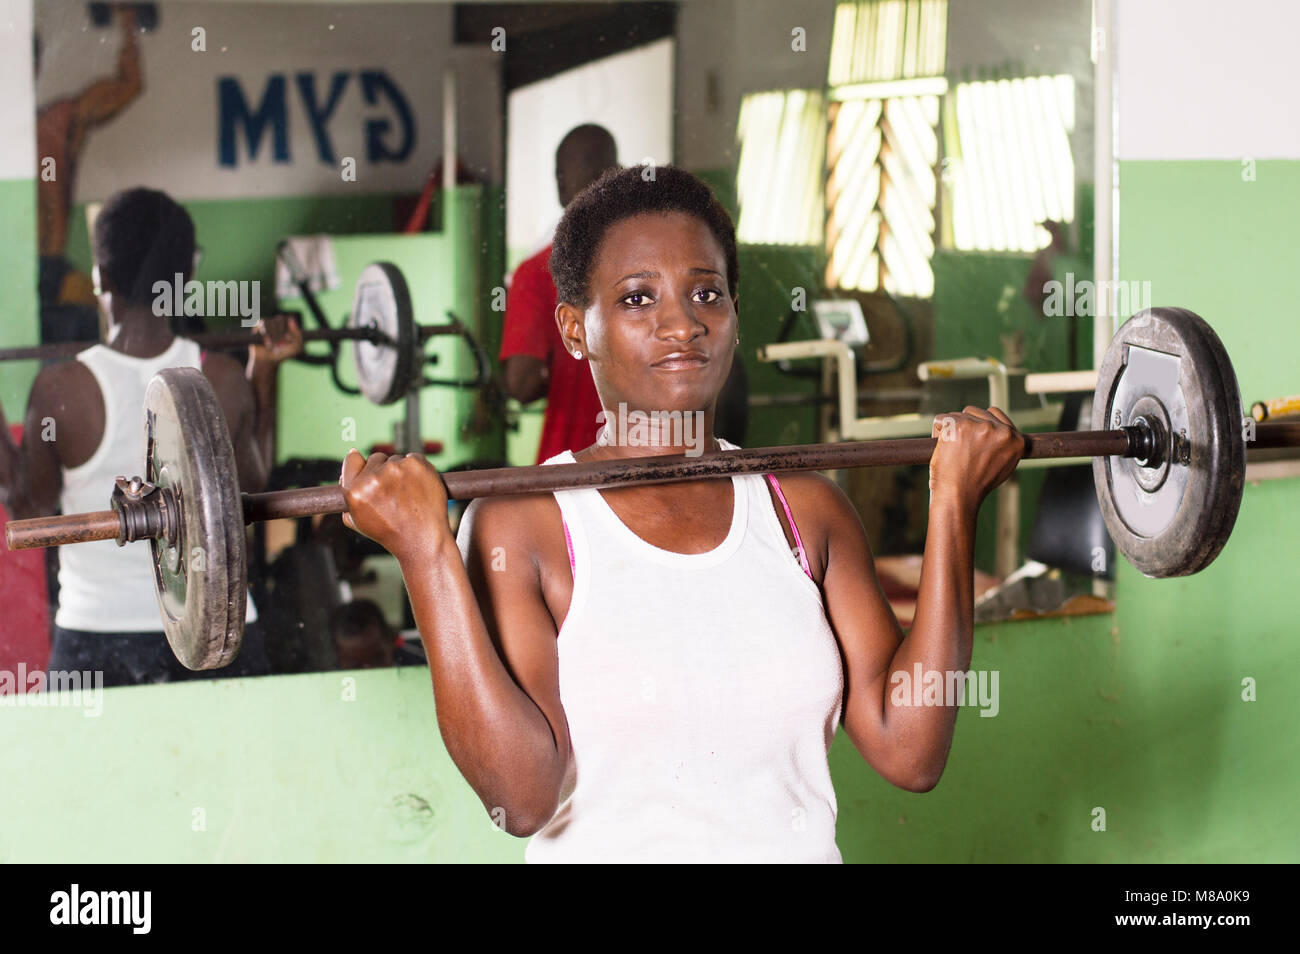 Young athlete, weight lifted at chest level looks at the camera. - Stock Image